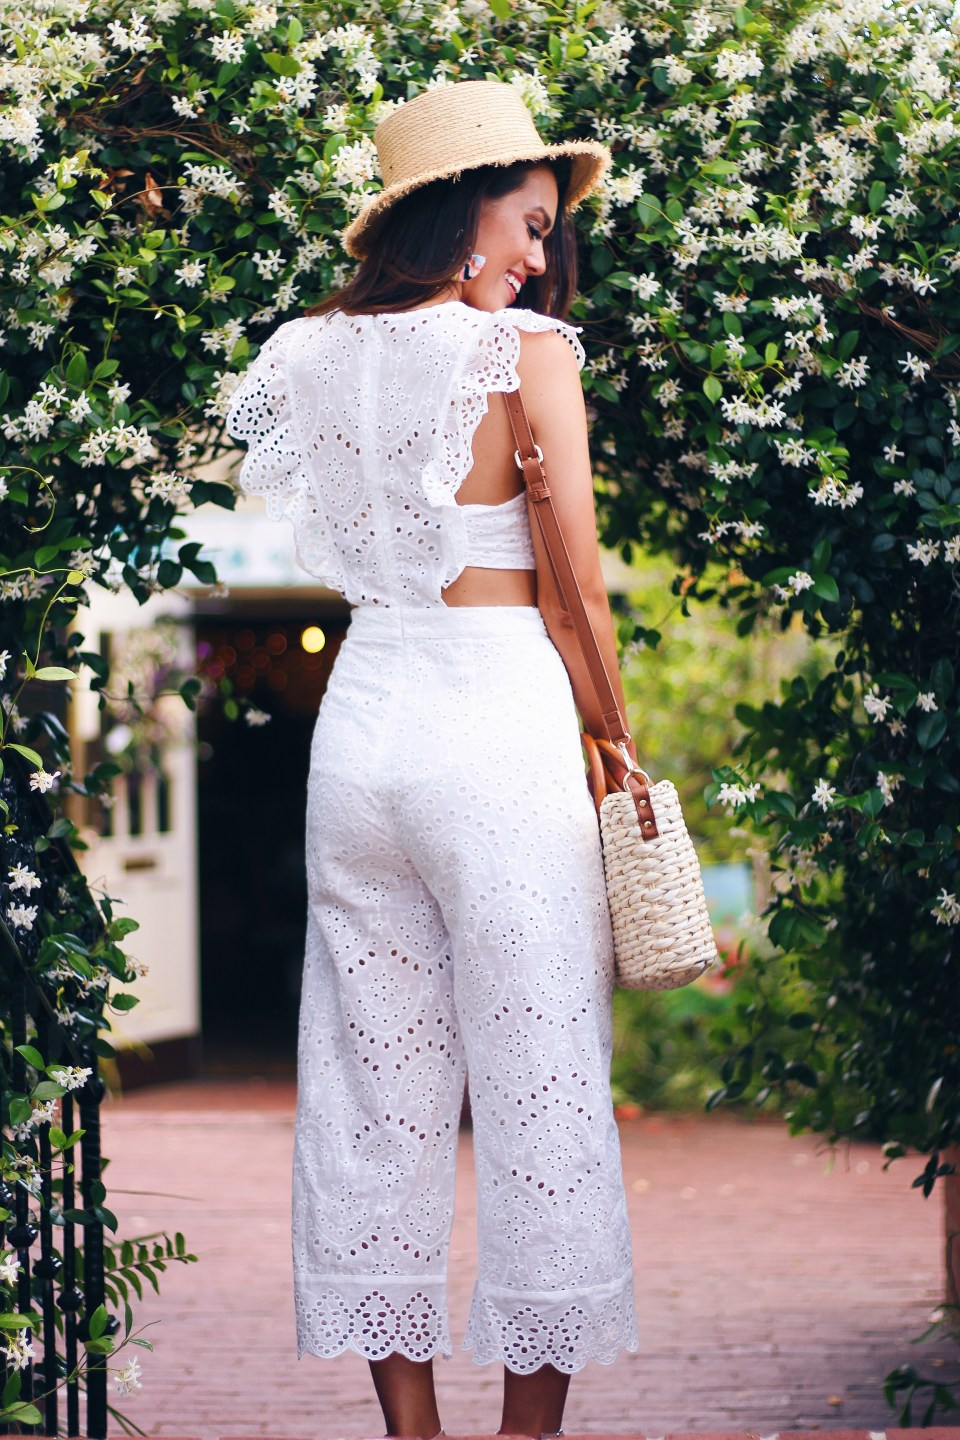 f5468e12e62 ... Processed with VSCO with hb1 preset IMG 3960 IMG 3959. Life Is Good  Eyelet Lace Jumpsuit    Colorful Fan Tassel Earrings    Zapara Woven Straw  Handbag ...